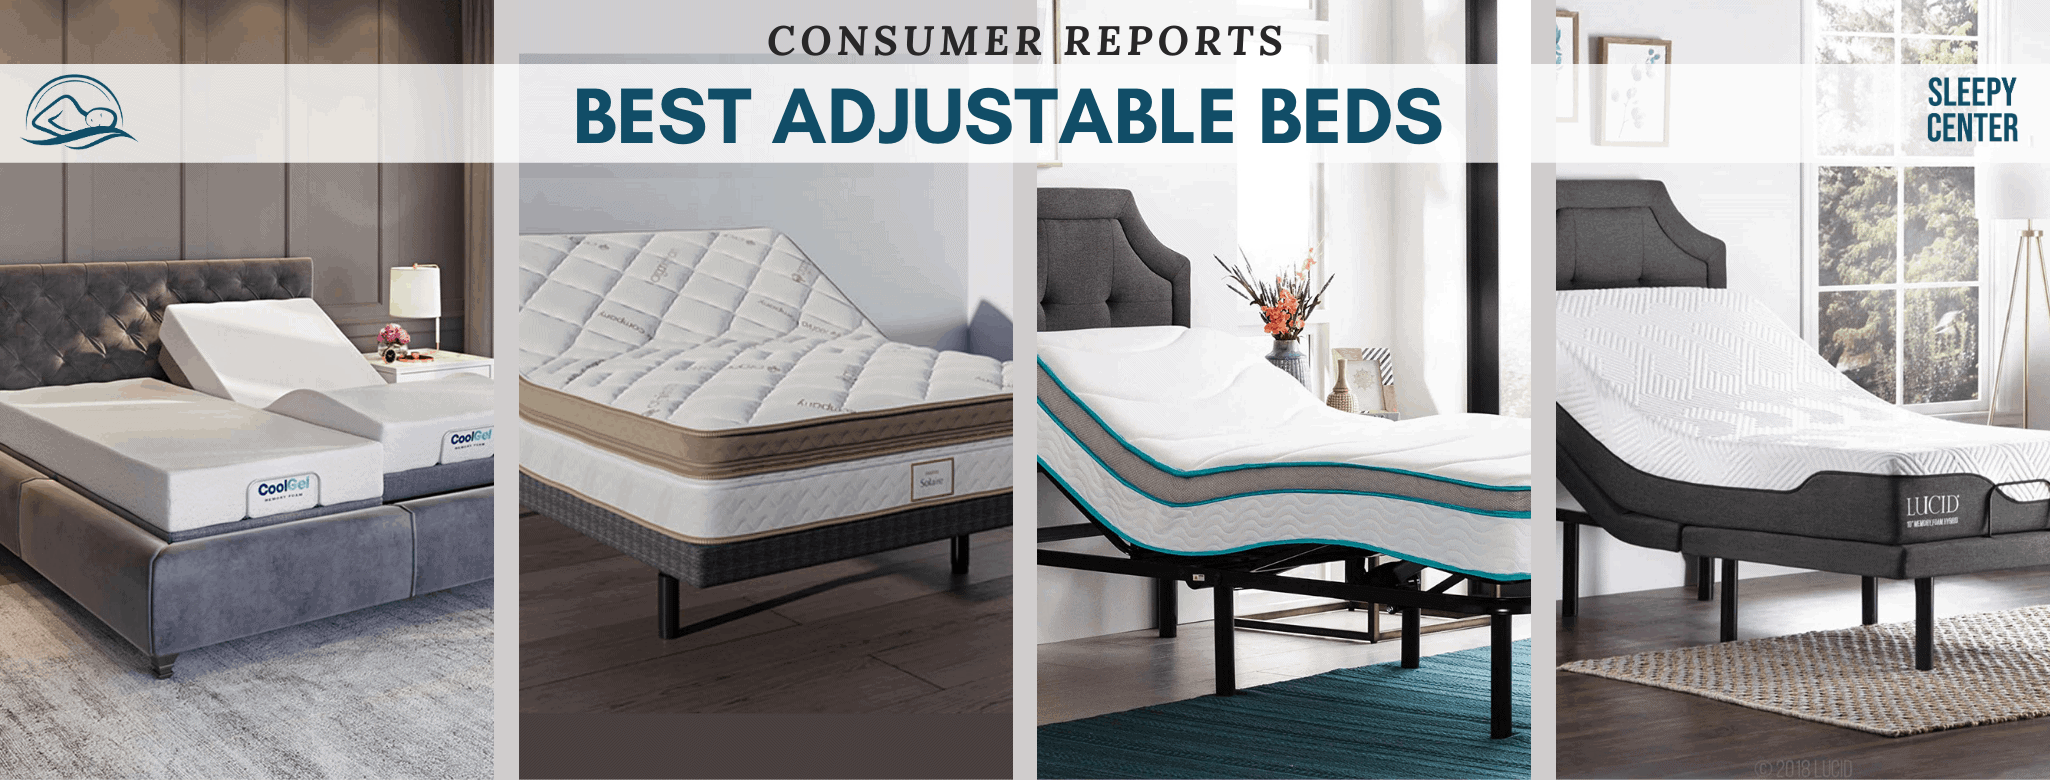 Best Adjustable Beds